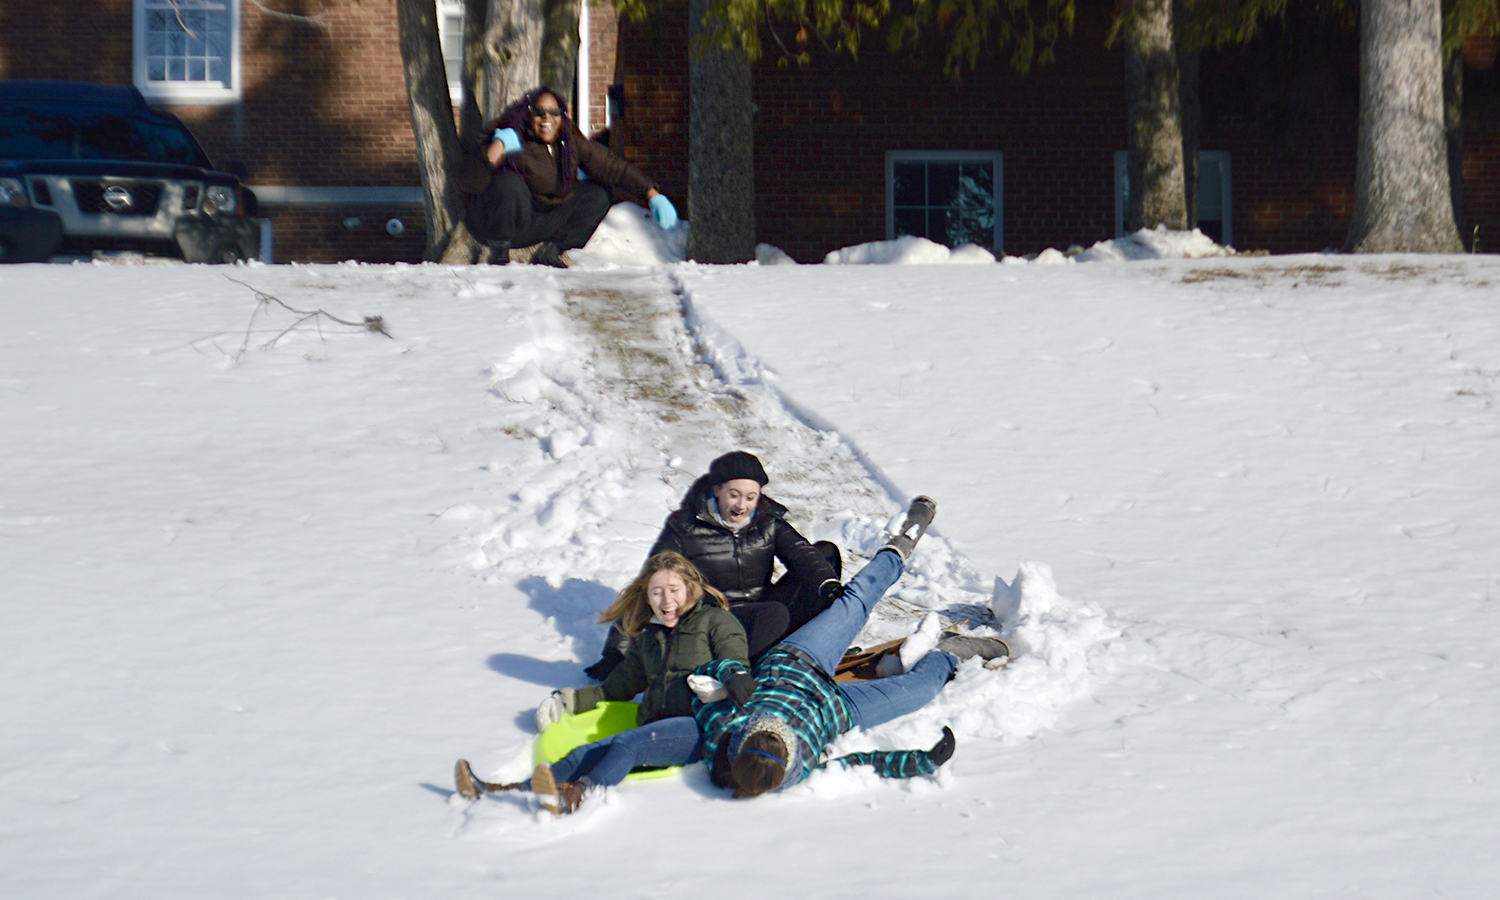 Bernice Shed '20 (top left) watches as Addison Gilbard '20, Hannah Bini '20 and Alex Curtis '20 sledding down the hill behind Comstock Hall.